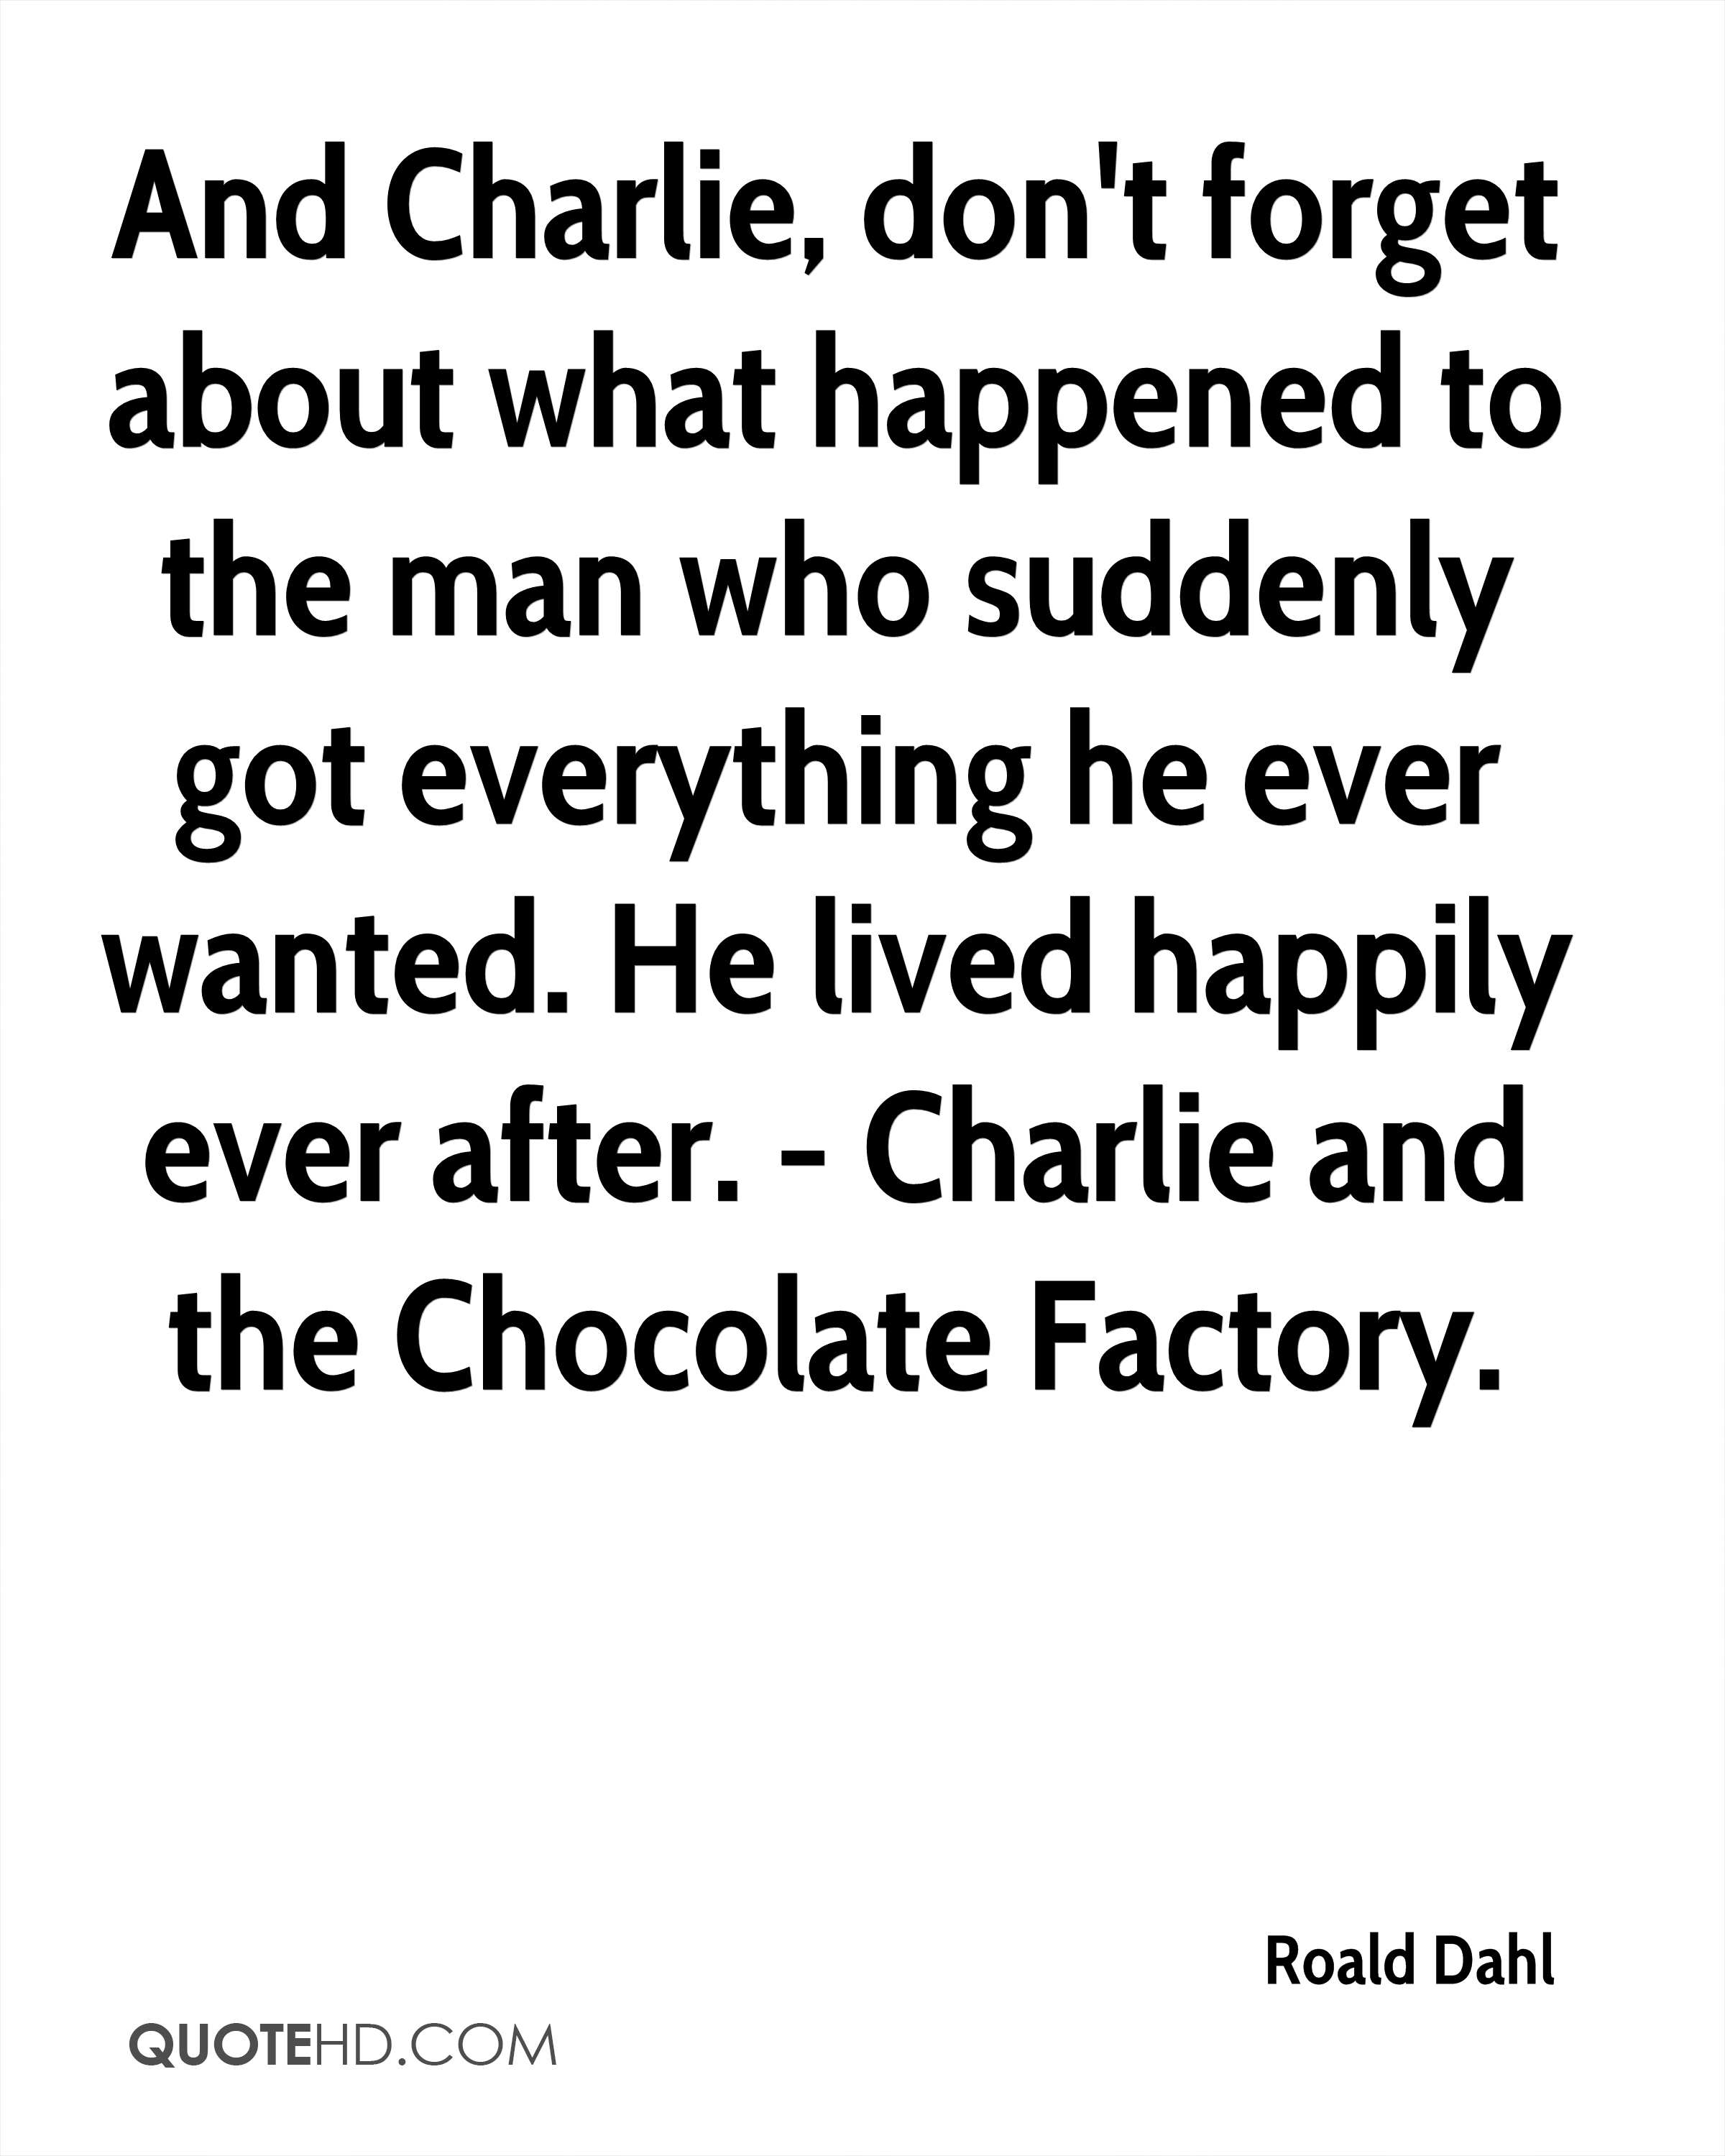 And Charlie, don't forget about what happened to the man who suddenly got everything he ever wanted. He lived happily ever after. - Charlie and the Chocolate Factory.